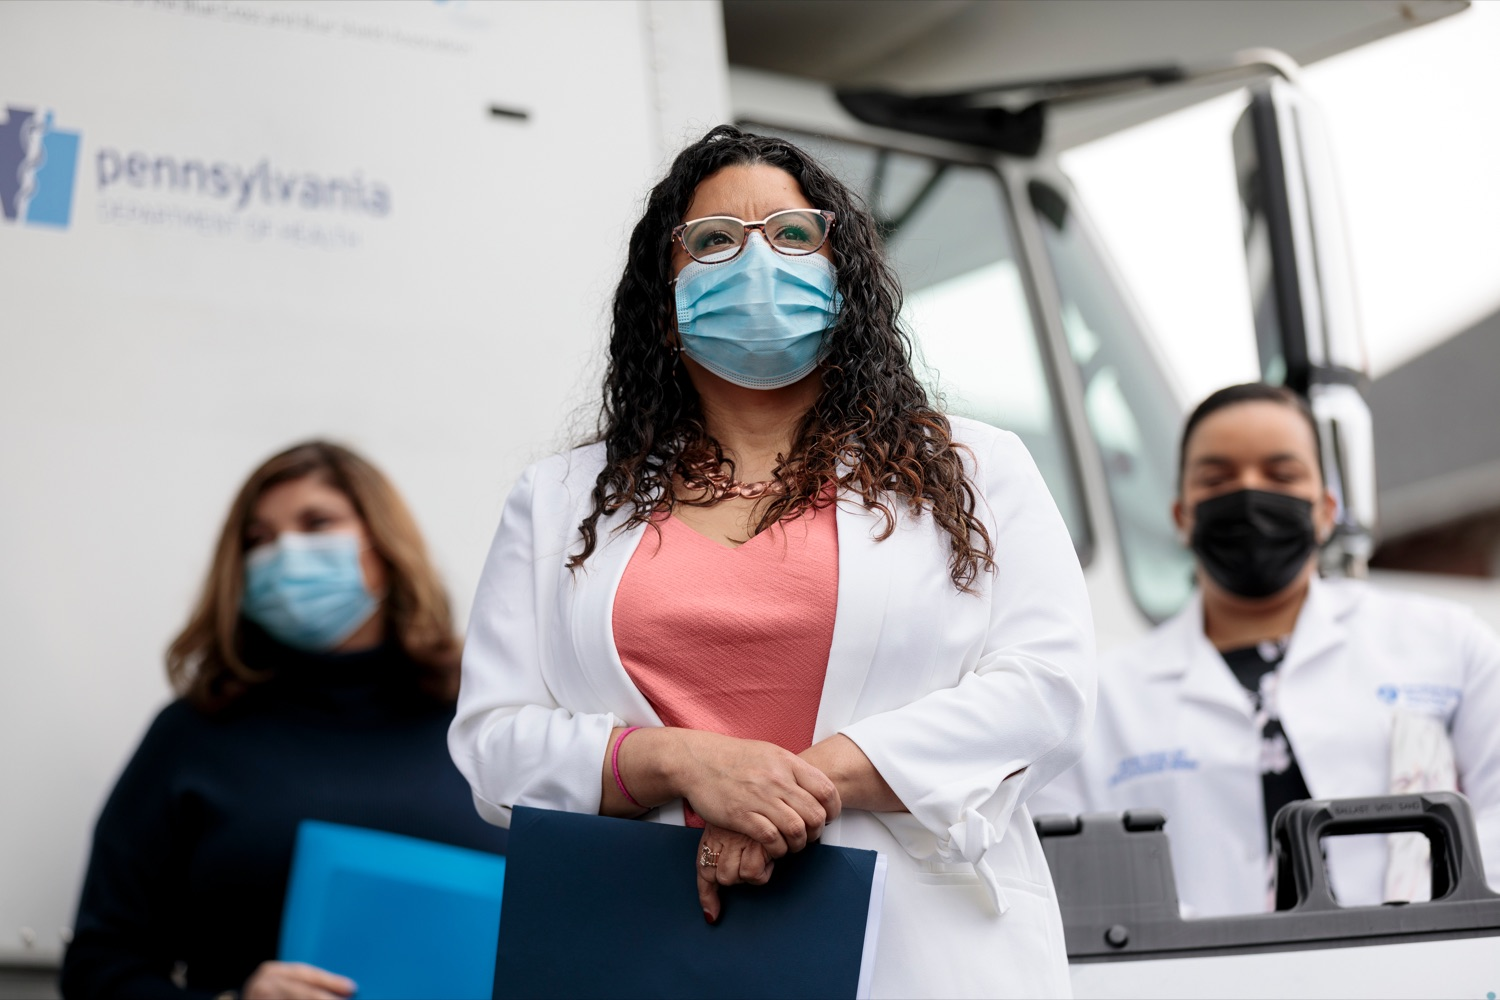 """<a href=""""https://filesource.wostreaming.net/commonwealthofpa/photo/18675_DOH_Beacon_Clinic_NK_003.jpg"""" target=""""_blank"""">⇣Download Photo<br></a>Governor Wolfs Advisory Commission on Latino Affairs Executive Director Luz Colon stands during a press conference, which discussed an upcoming COVID-19 mobile response vaccination tour to provide vaccinations and education to minority and underserved communities across the commonwealth, outside of Beacon Clinic in Harrisburg on Monday, April 12, 2021."""